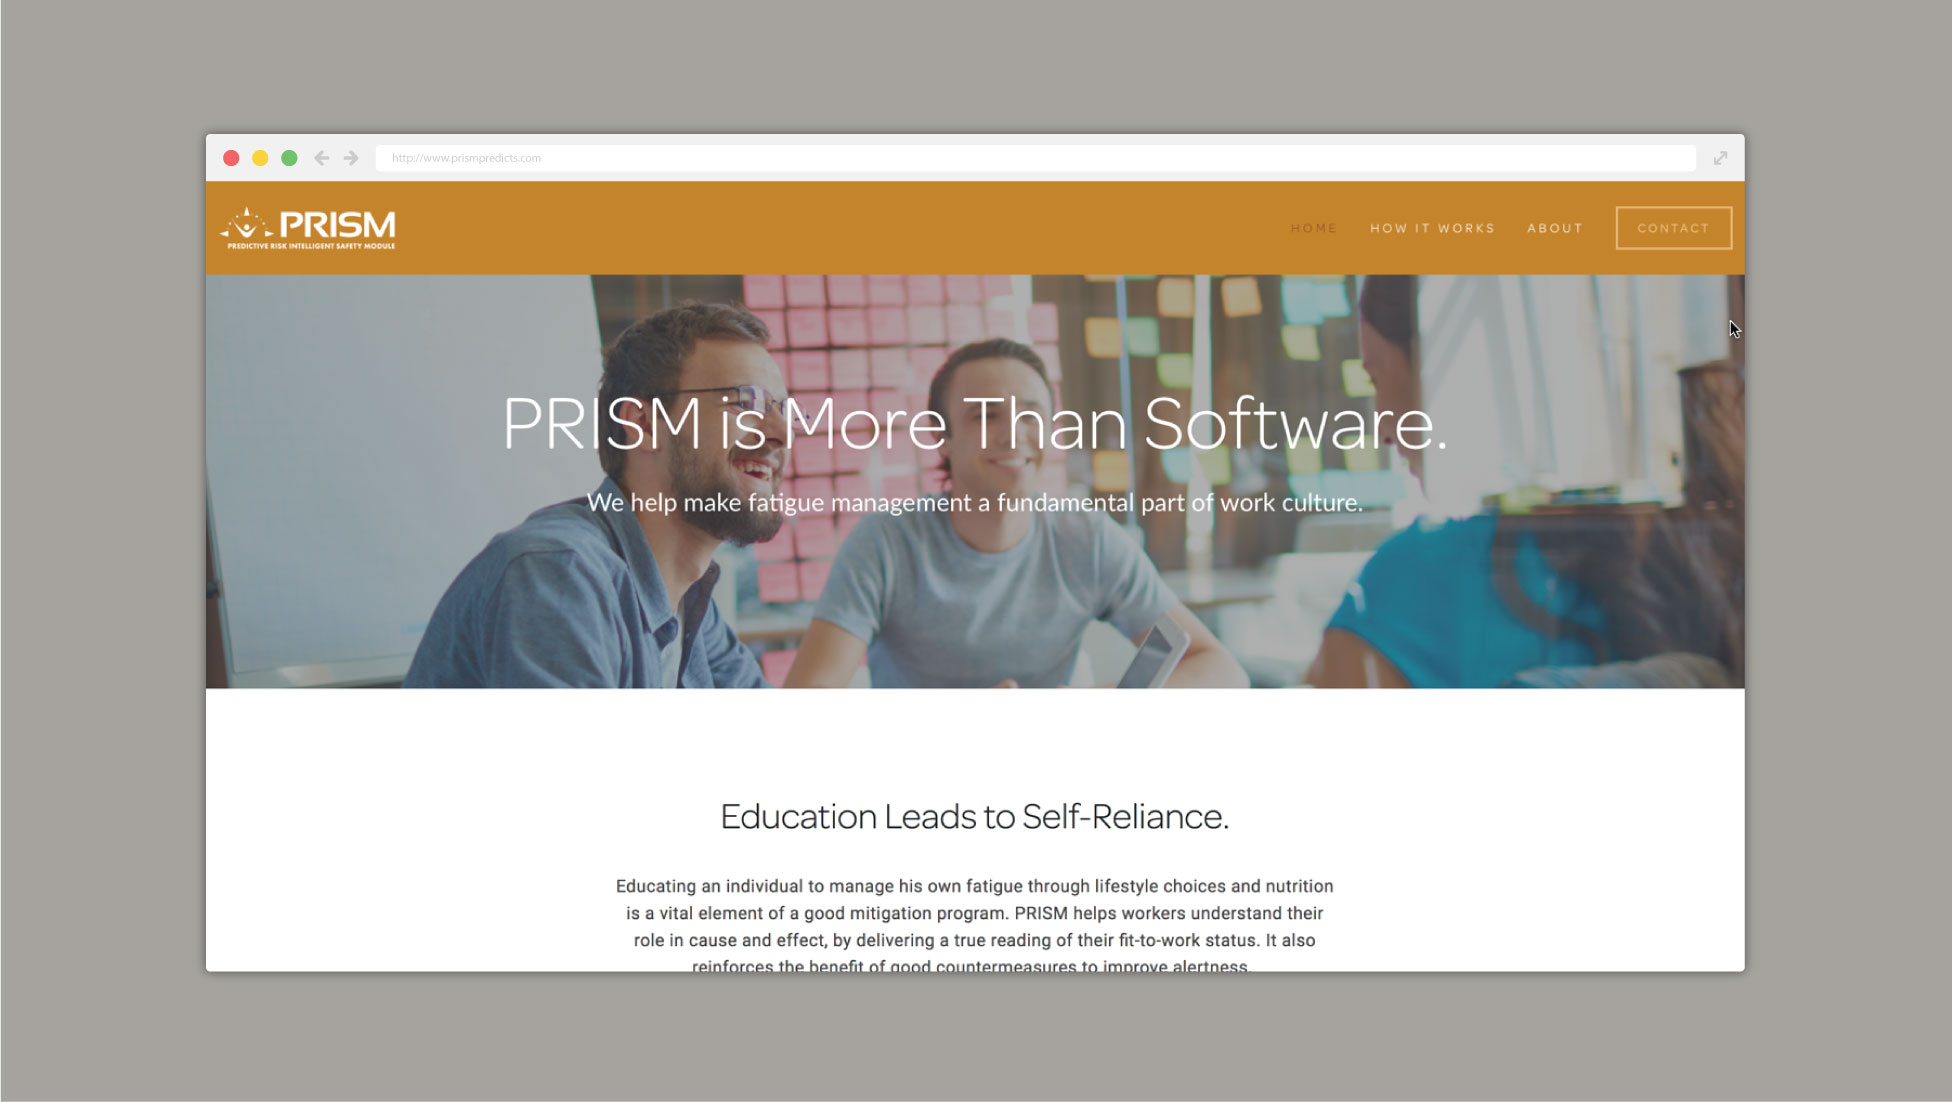 PRISM-More-Than-Software